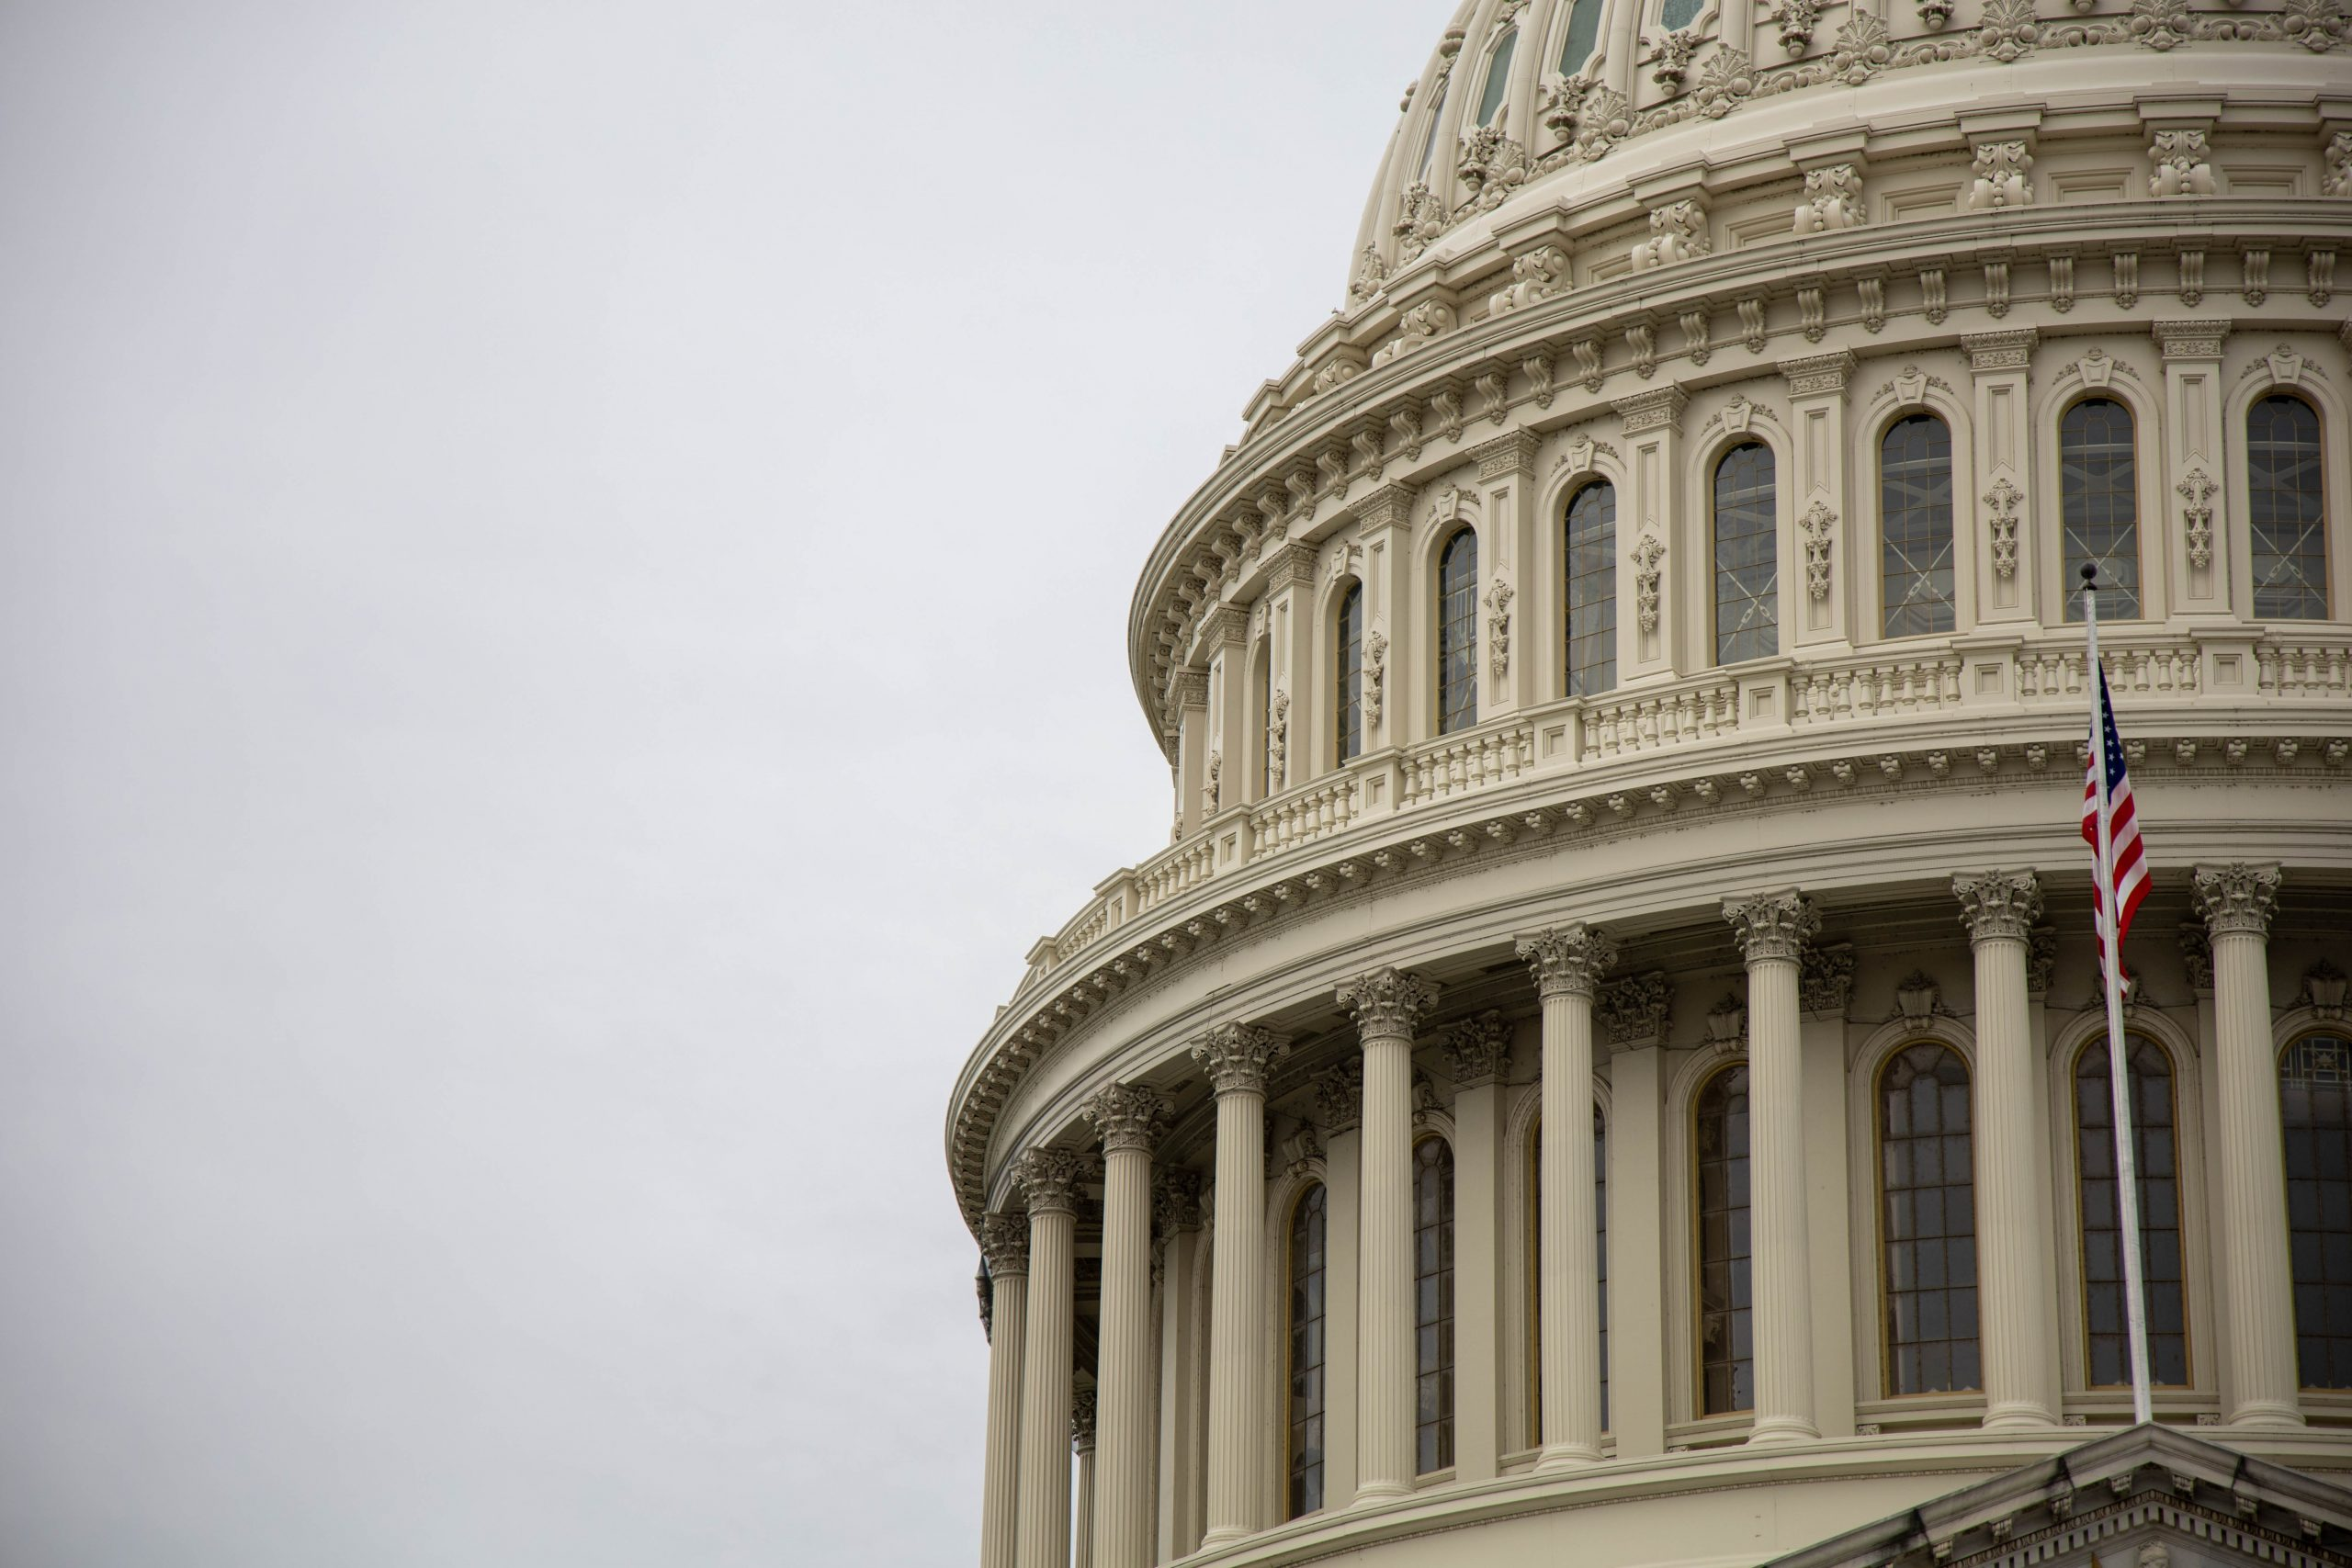 A close up photo of a portion of the US Capitol dome